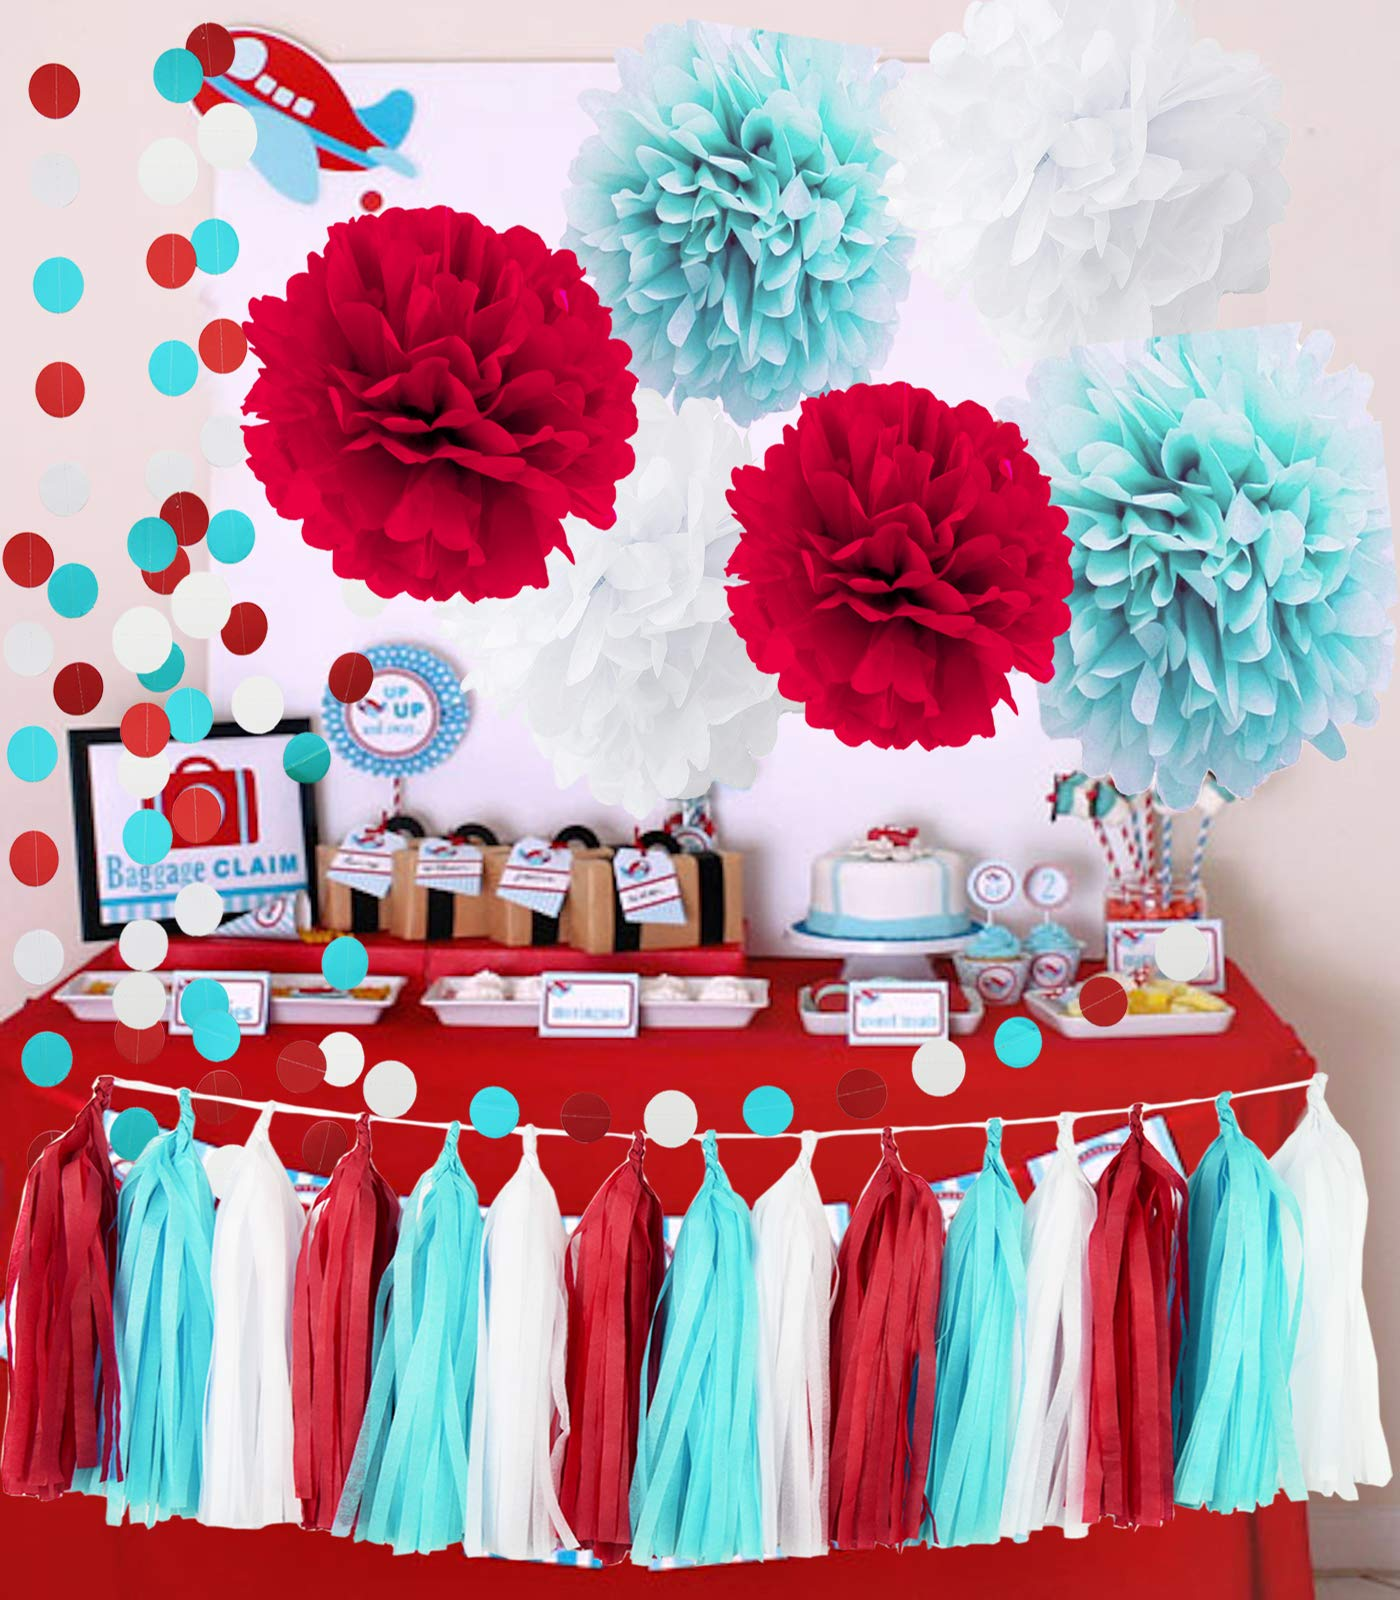 Bridal Shower Decorations Aqua Blue White Red Tissue Pom Pom Garland for Nautical Baby Shower Decorations/Aqua Red Wedding /Dr Seuss Cat in The Hat 1st Birthday Party Supplies/ Airplane Party Decor by Qian's Party